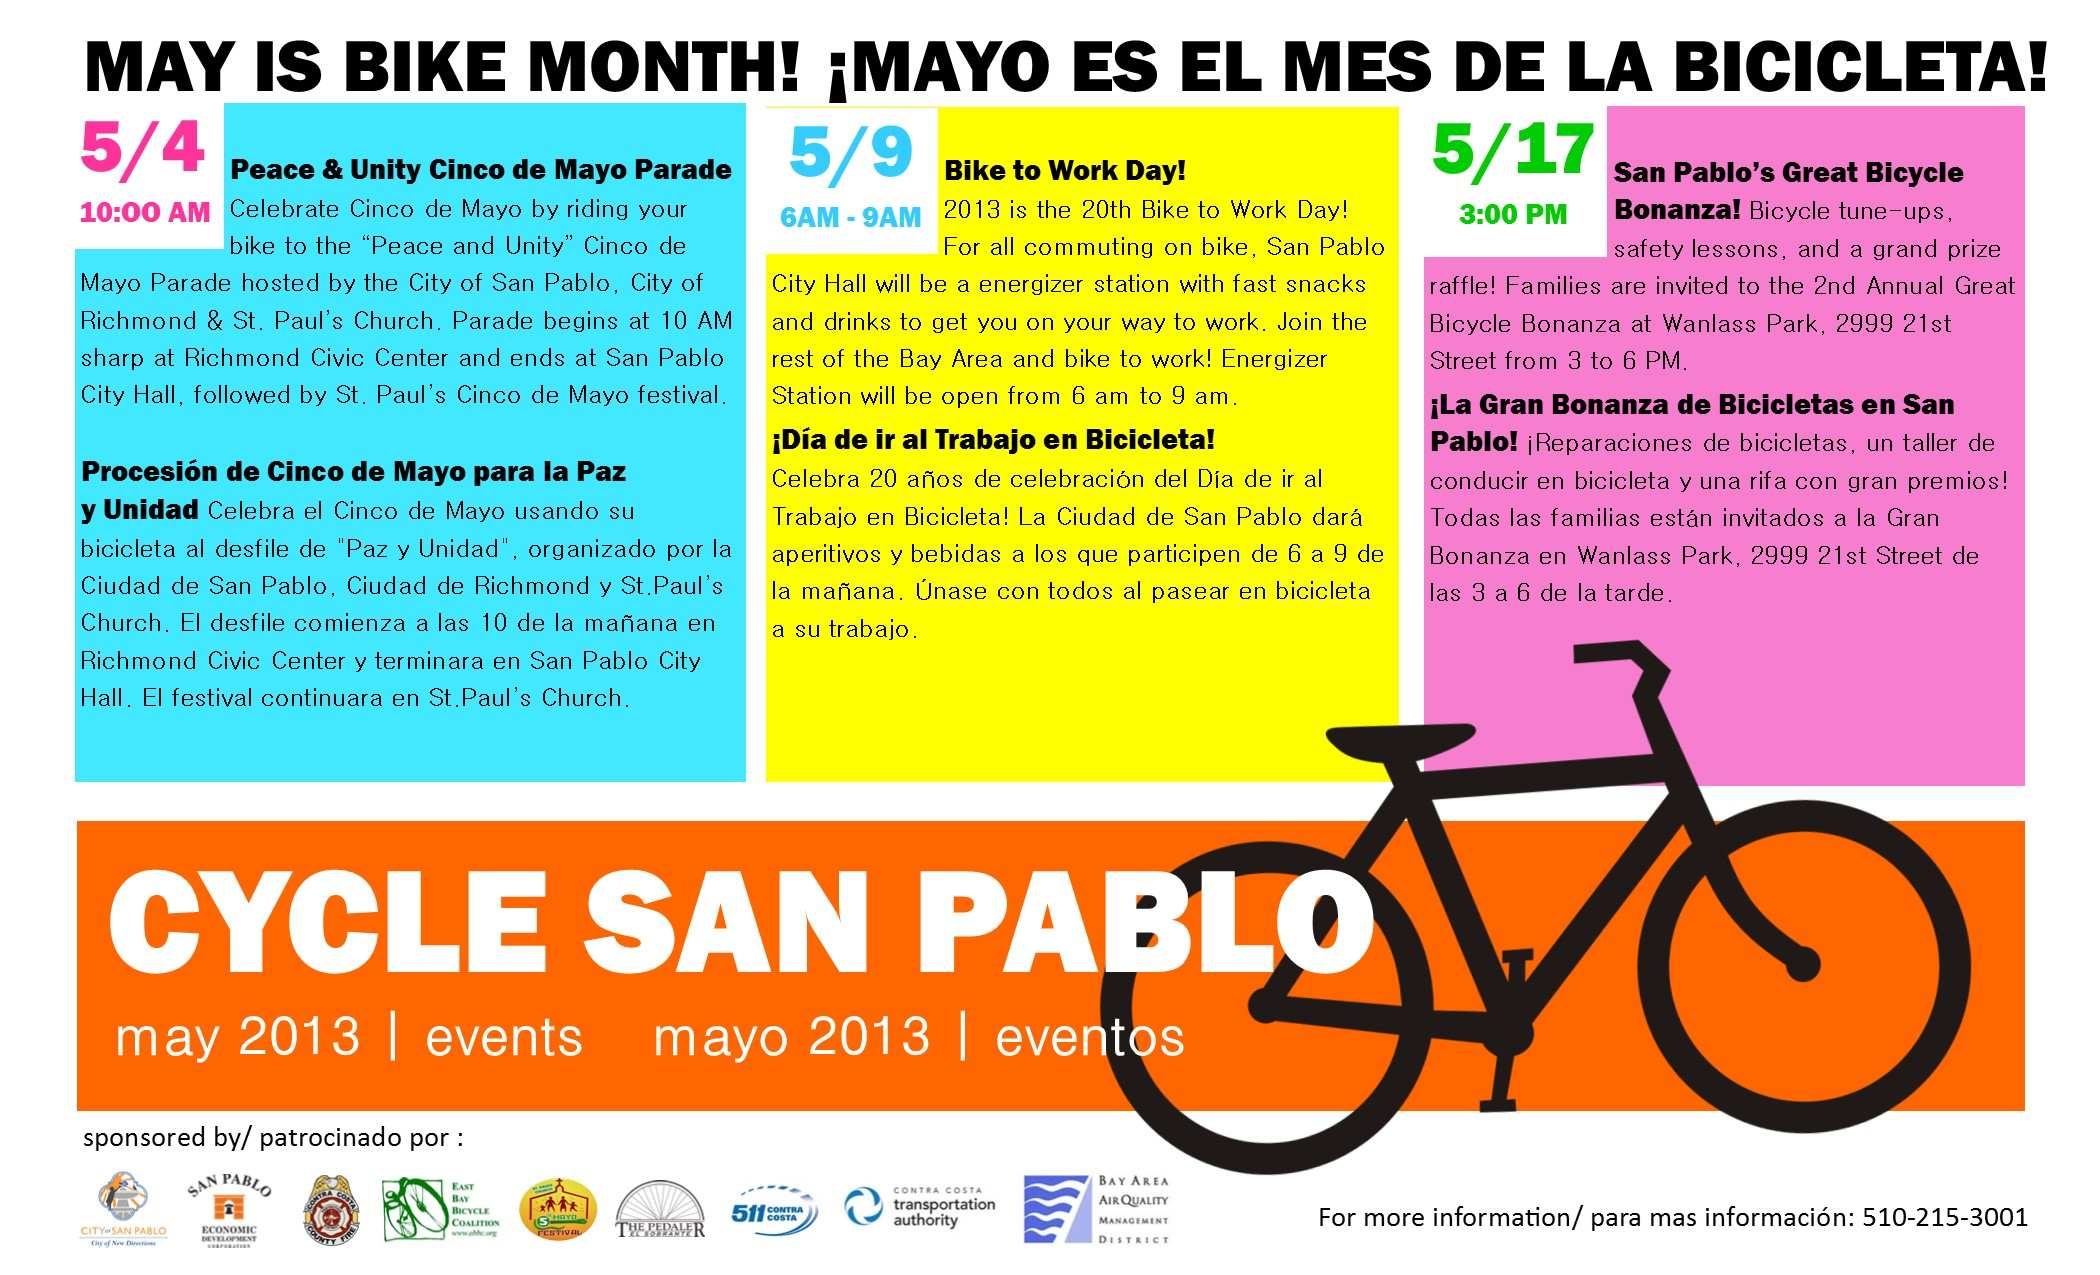 COSP May Bike Month 041113 Upd.jpg